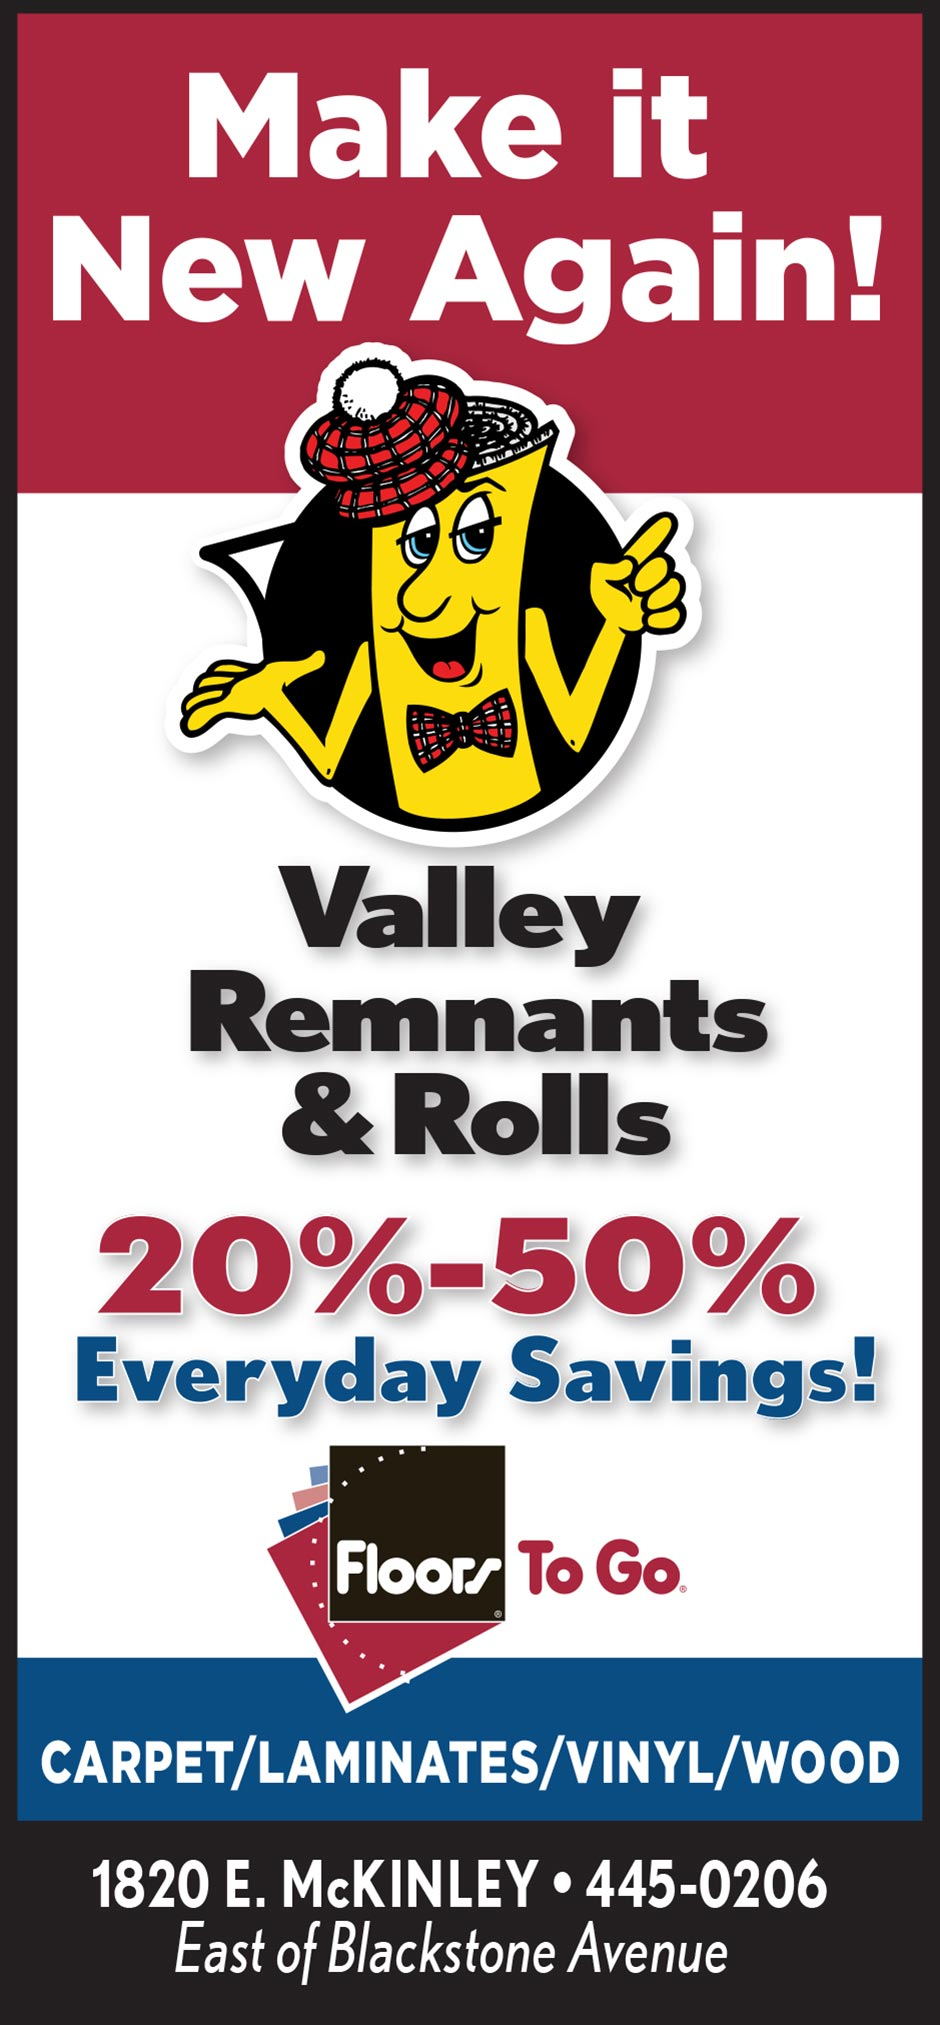 Make it new again with valley remnants & rolls!  20-50% savings every day at Floors To Go in Fresno!